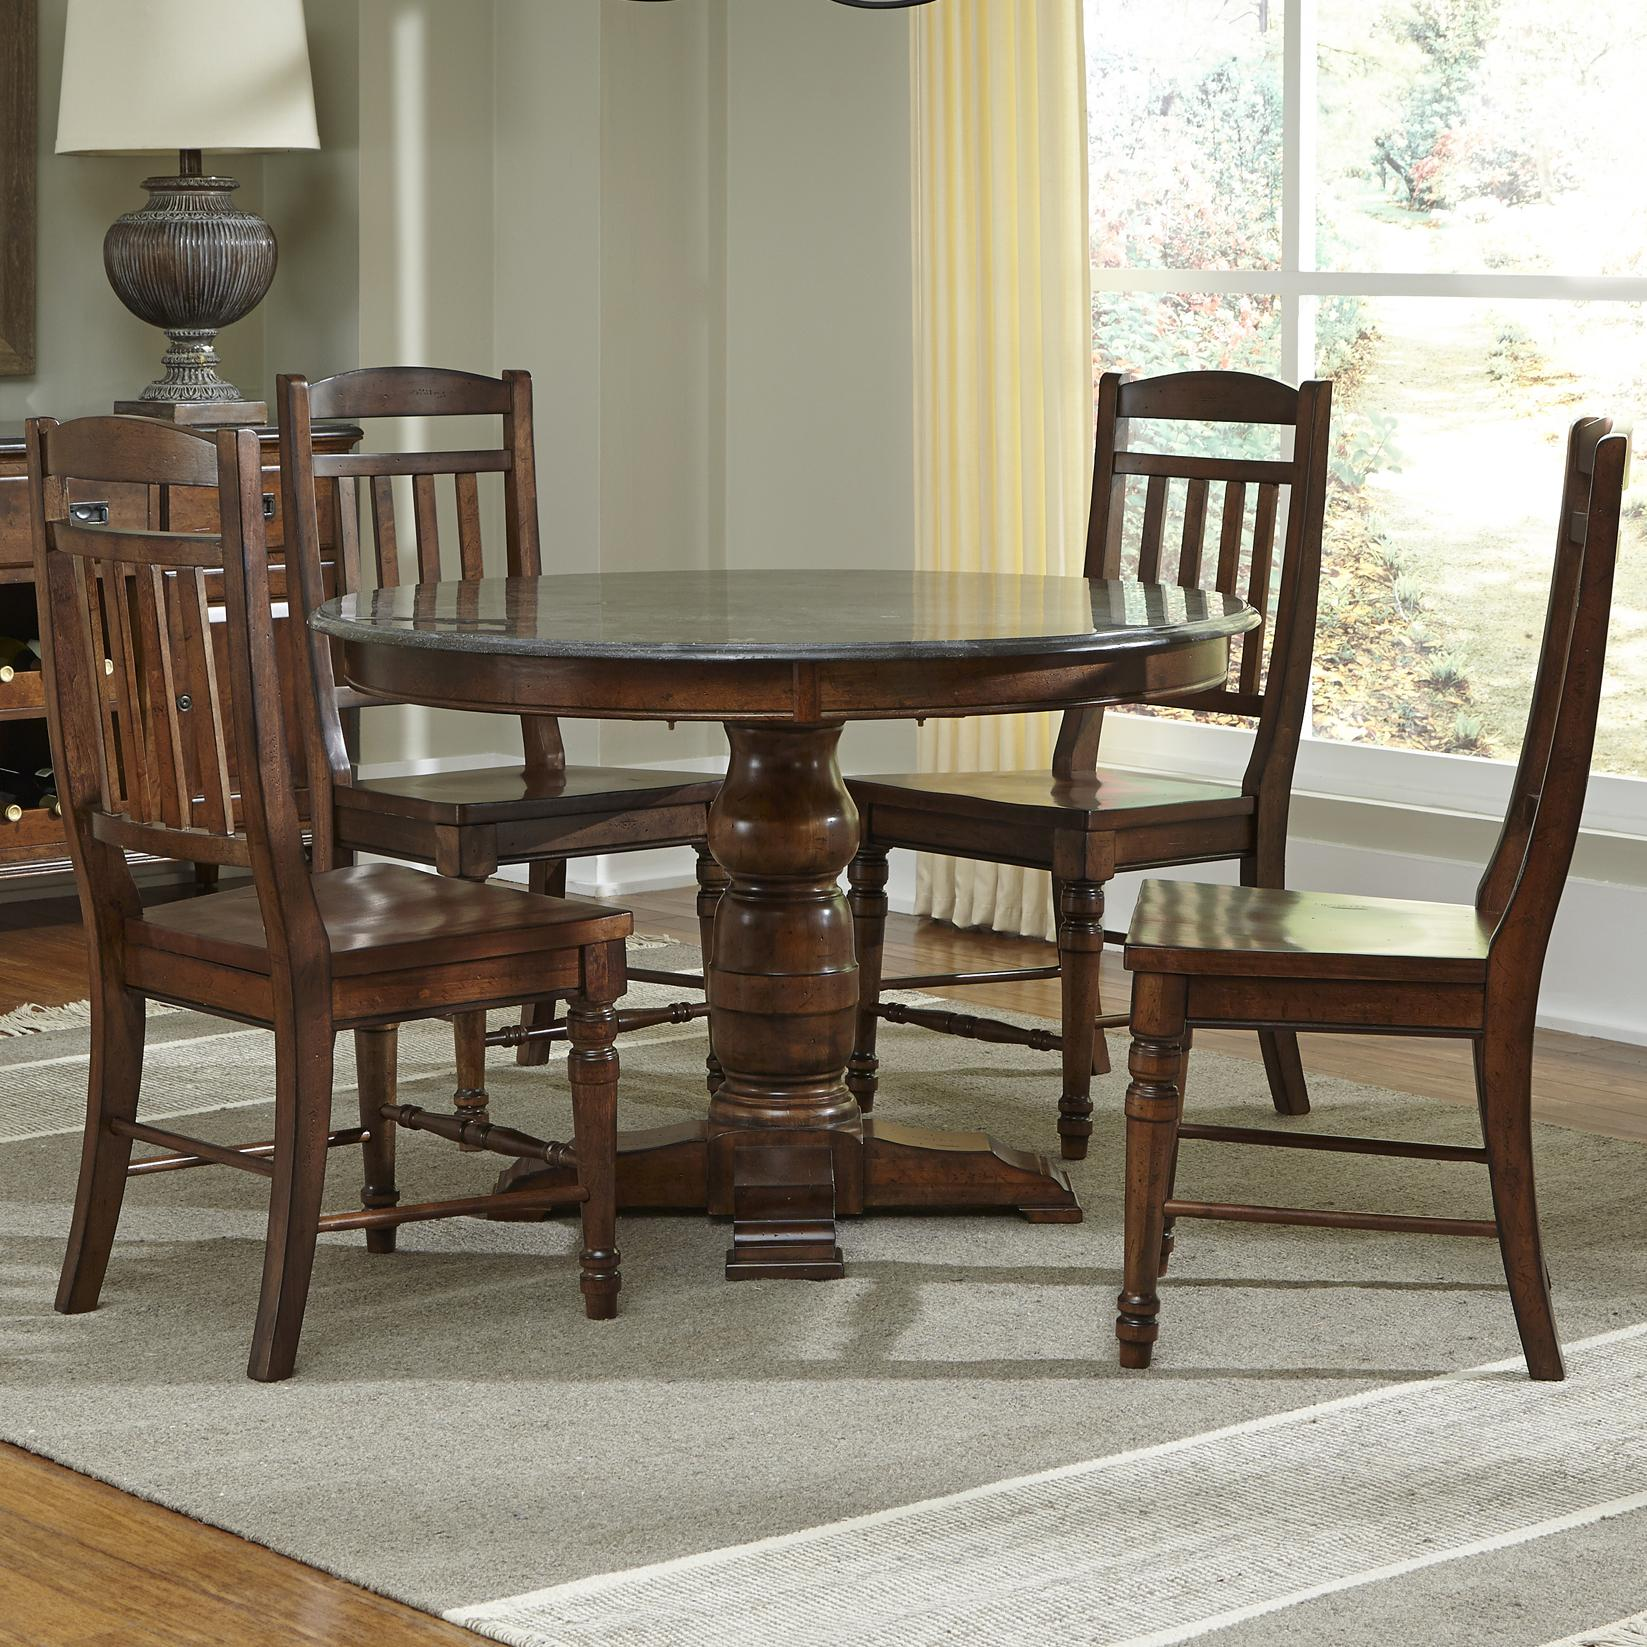 AAmerica Andover Park 5 Piece Dining Set - Item Number: ADV-AC-6-20-0+4x2-65-K